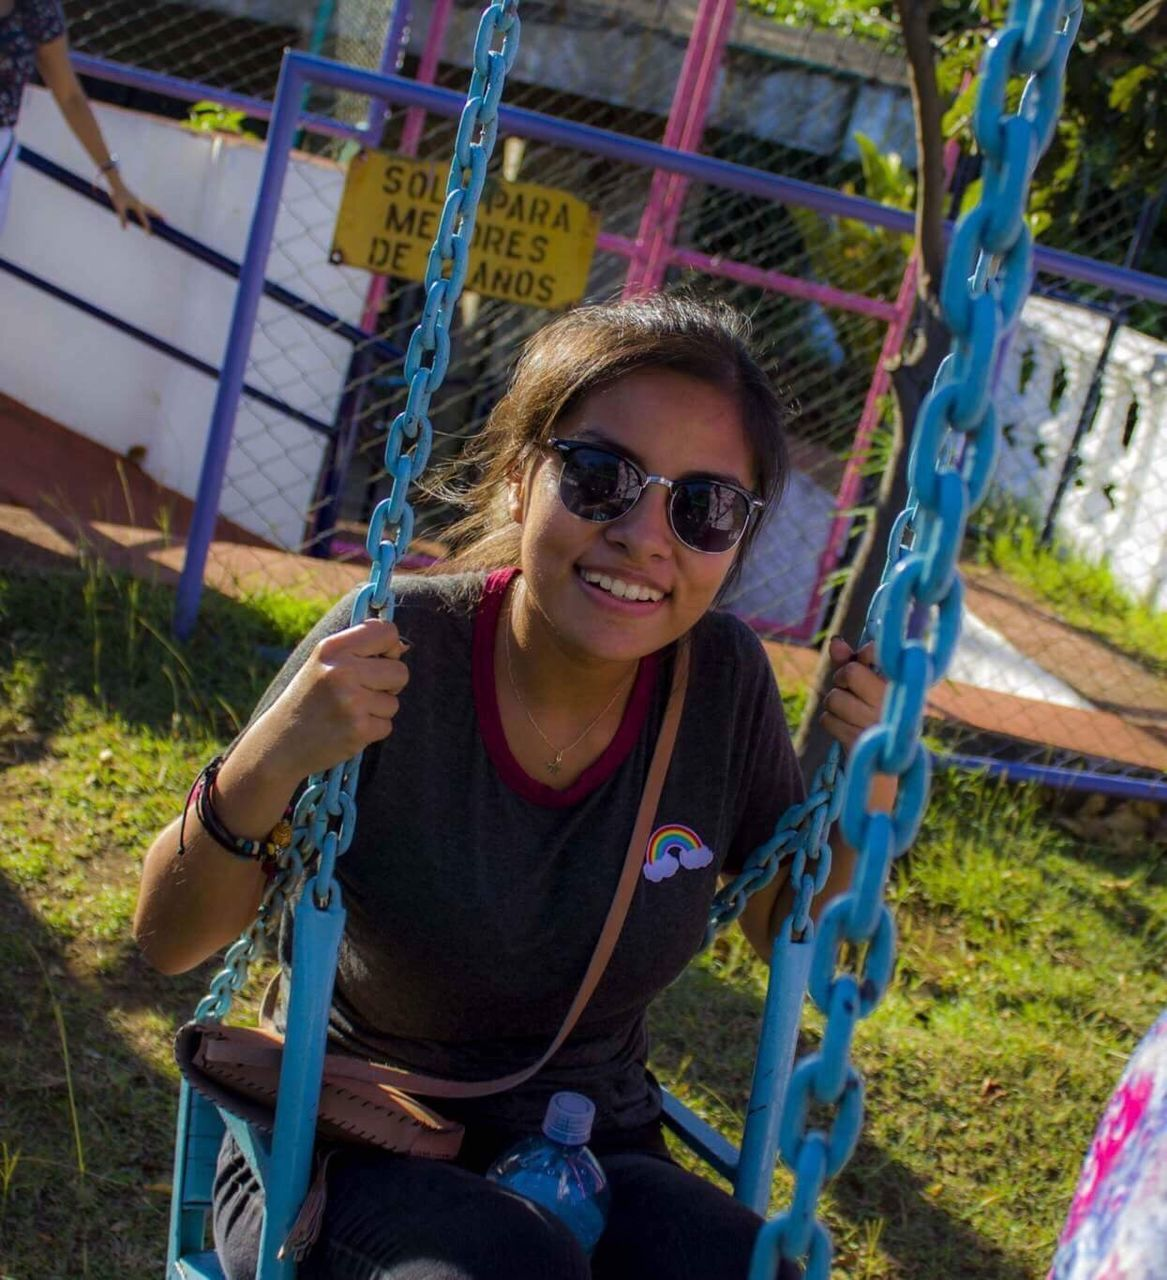 sunglasses, smiling, looking at camera, young adult, one person, casual clothing, leisure activity, young women, outdoors, front view, real people, lifestyles, day, happiness, portrait, chain, swing, people